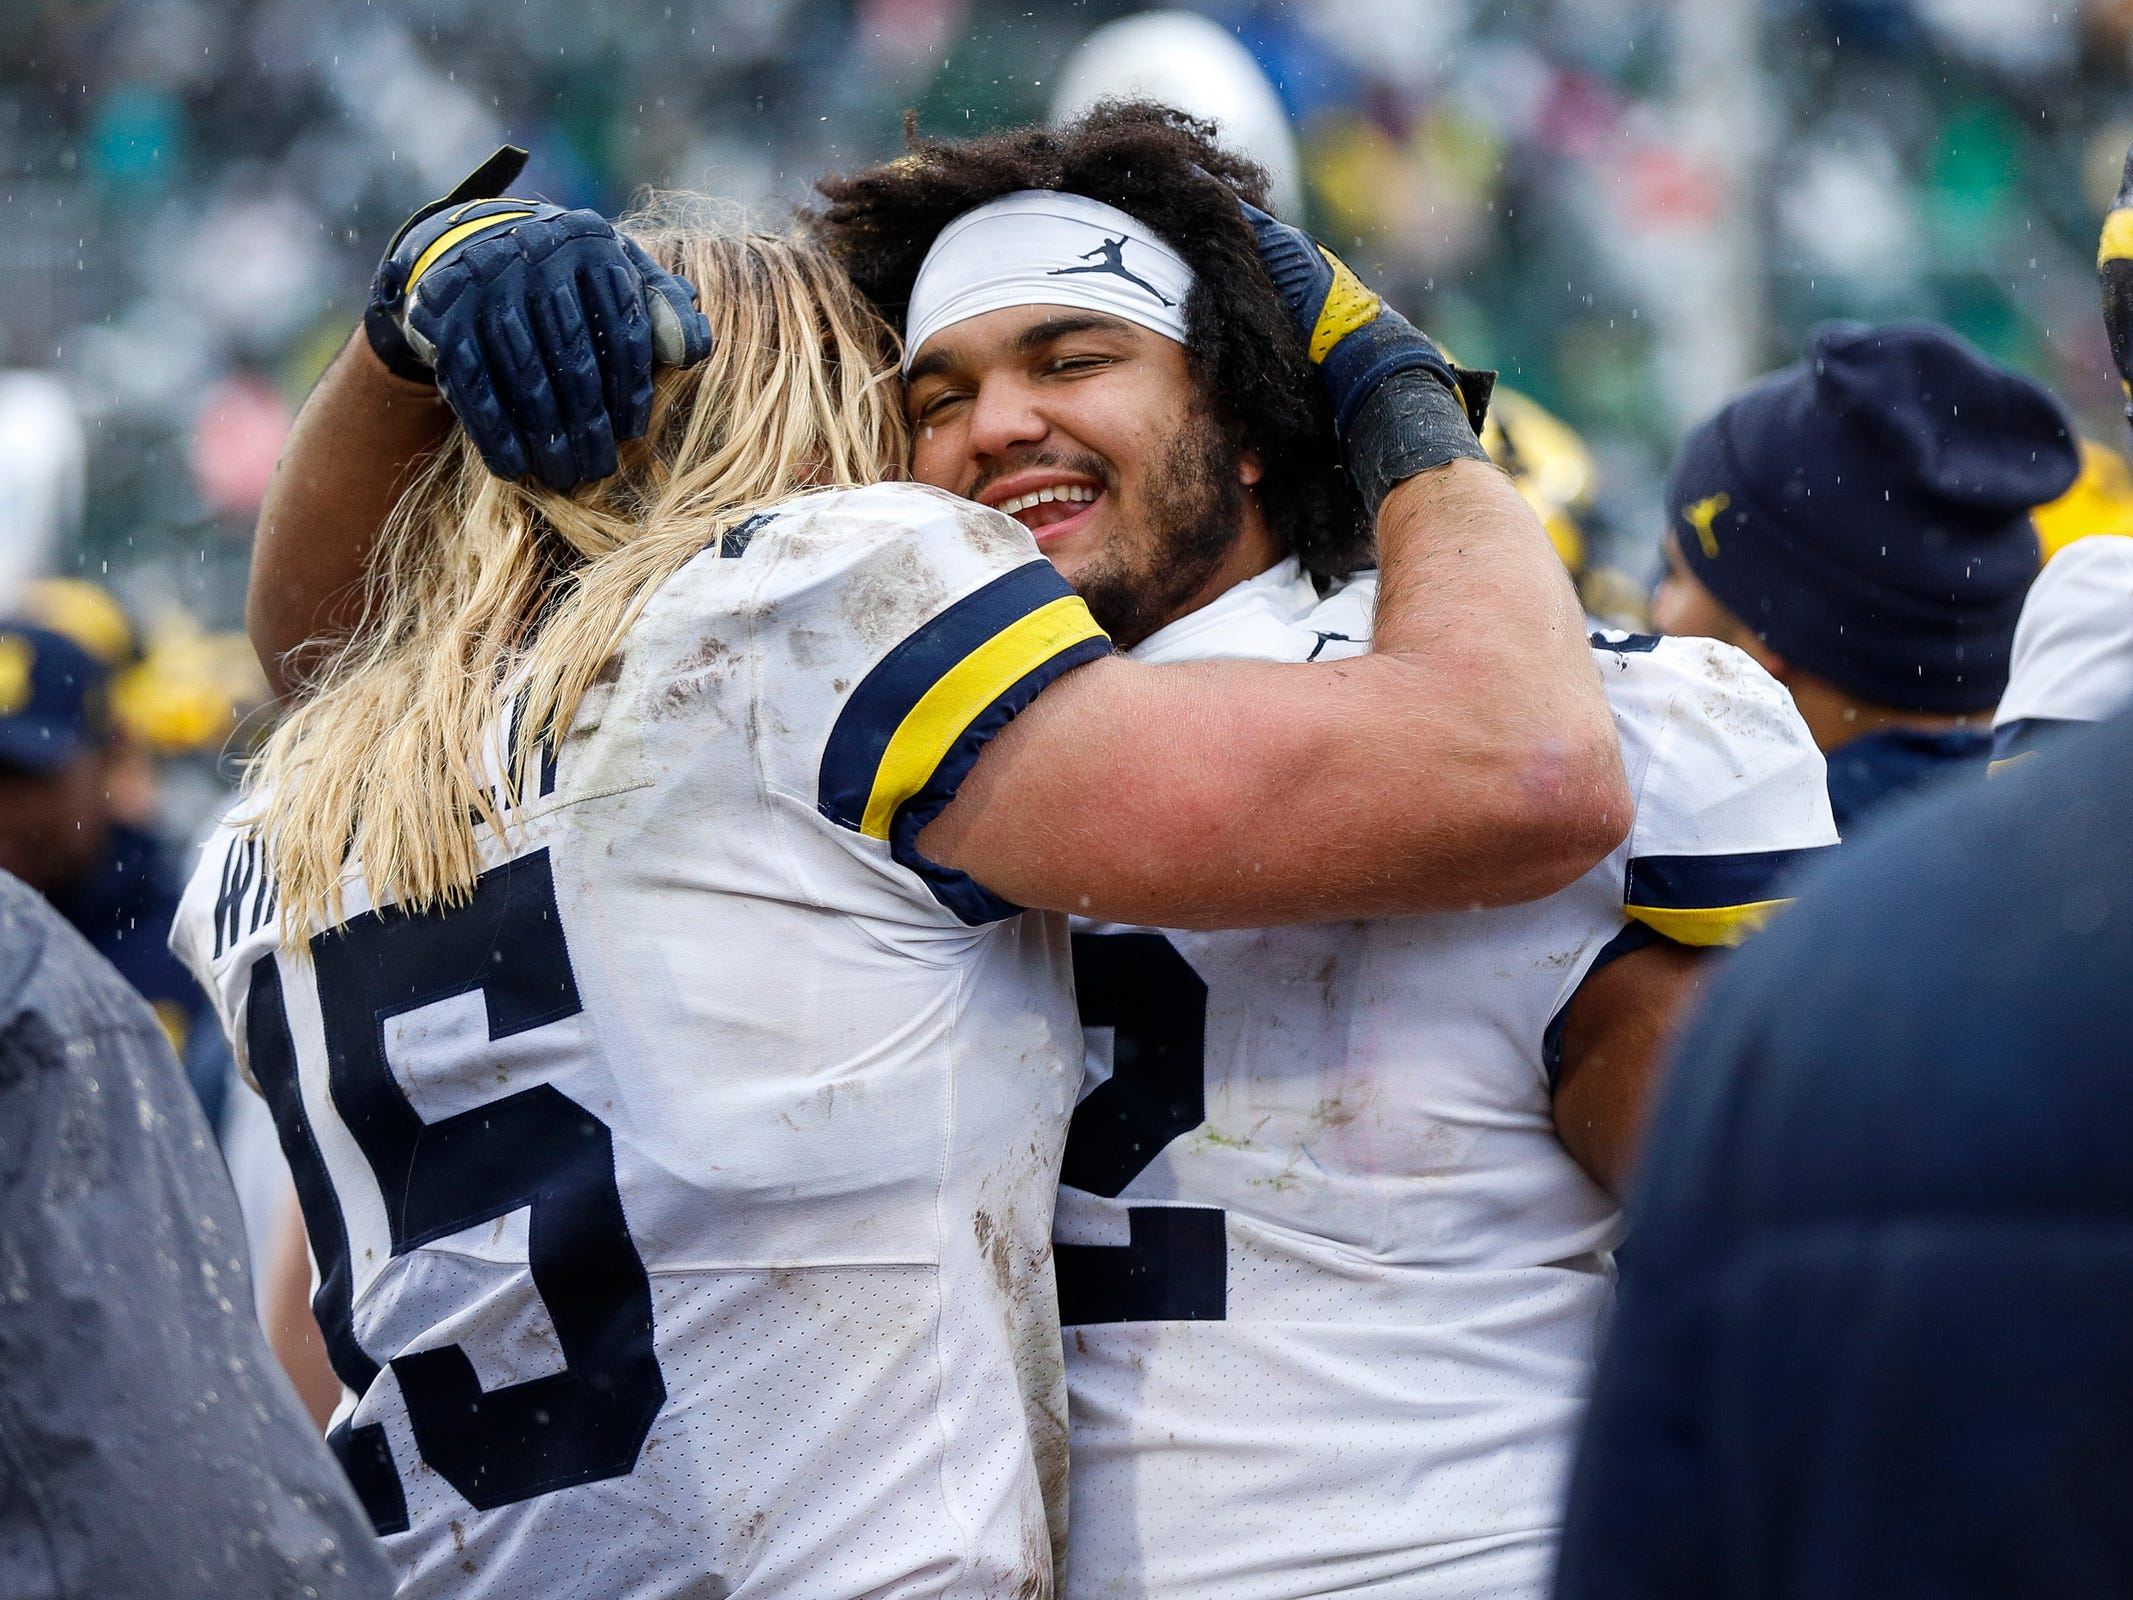 Michigan defensive lineman Chase Winovich, left, hugs defensive lineman Carlo Kemp during the second half against Michigan State at Spartan Stadium in East Lansing, Saturday, Oct. 20, 2018.